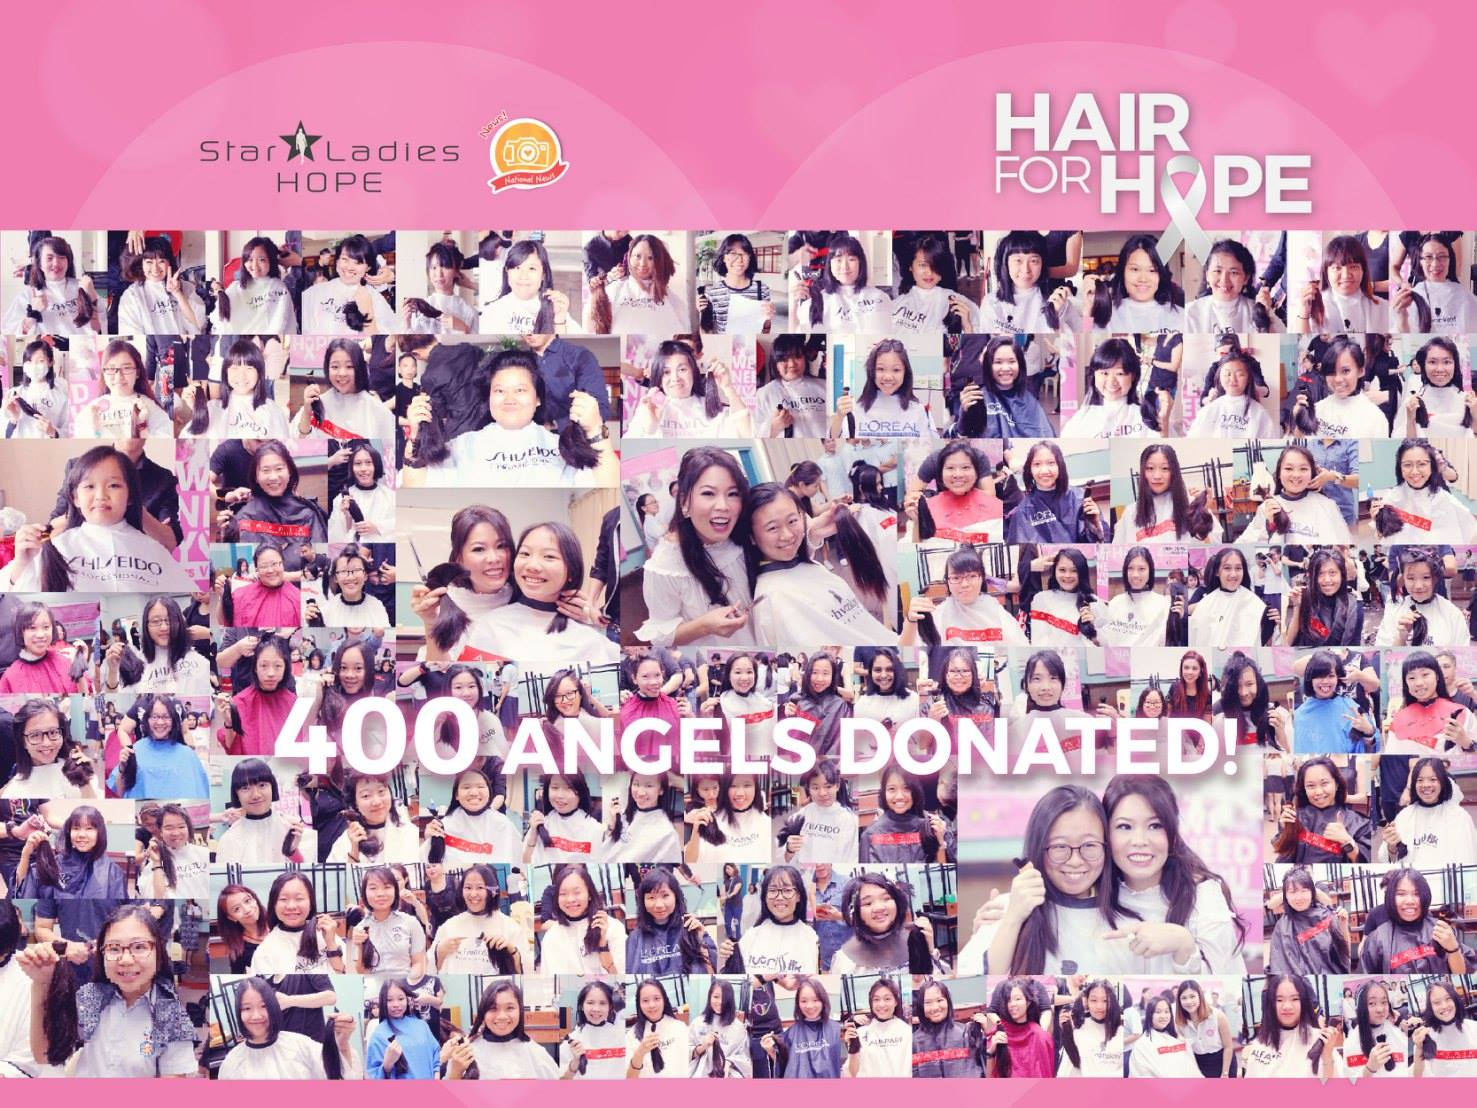 HAIR FOR HOPE . THEY DID IT | With just 2 campaigns, <Hair For Hope> Hair Donation Campaign, organized by StarLadies Hope has successfully gathered 400 girls and ladies to donate their precious hair! Because of every kind-hearted donors, we believe there is a bright future in building a society with Love and Care, to help those in need!  It might be just HAIR for you, but it's HOPE for them!  Once again, many thanks and love to all donors and partners in your selfless supports and dedications!